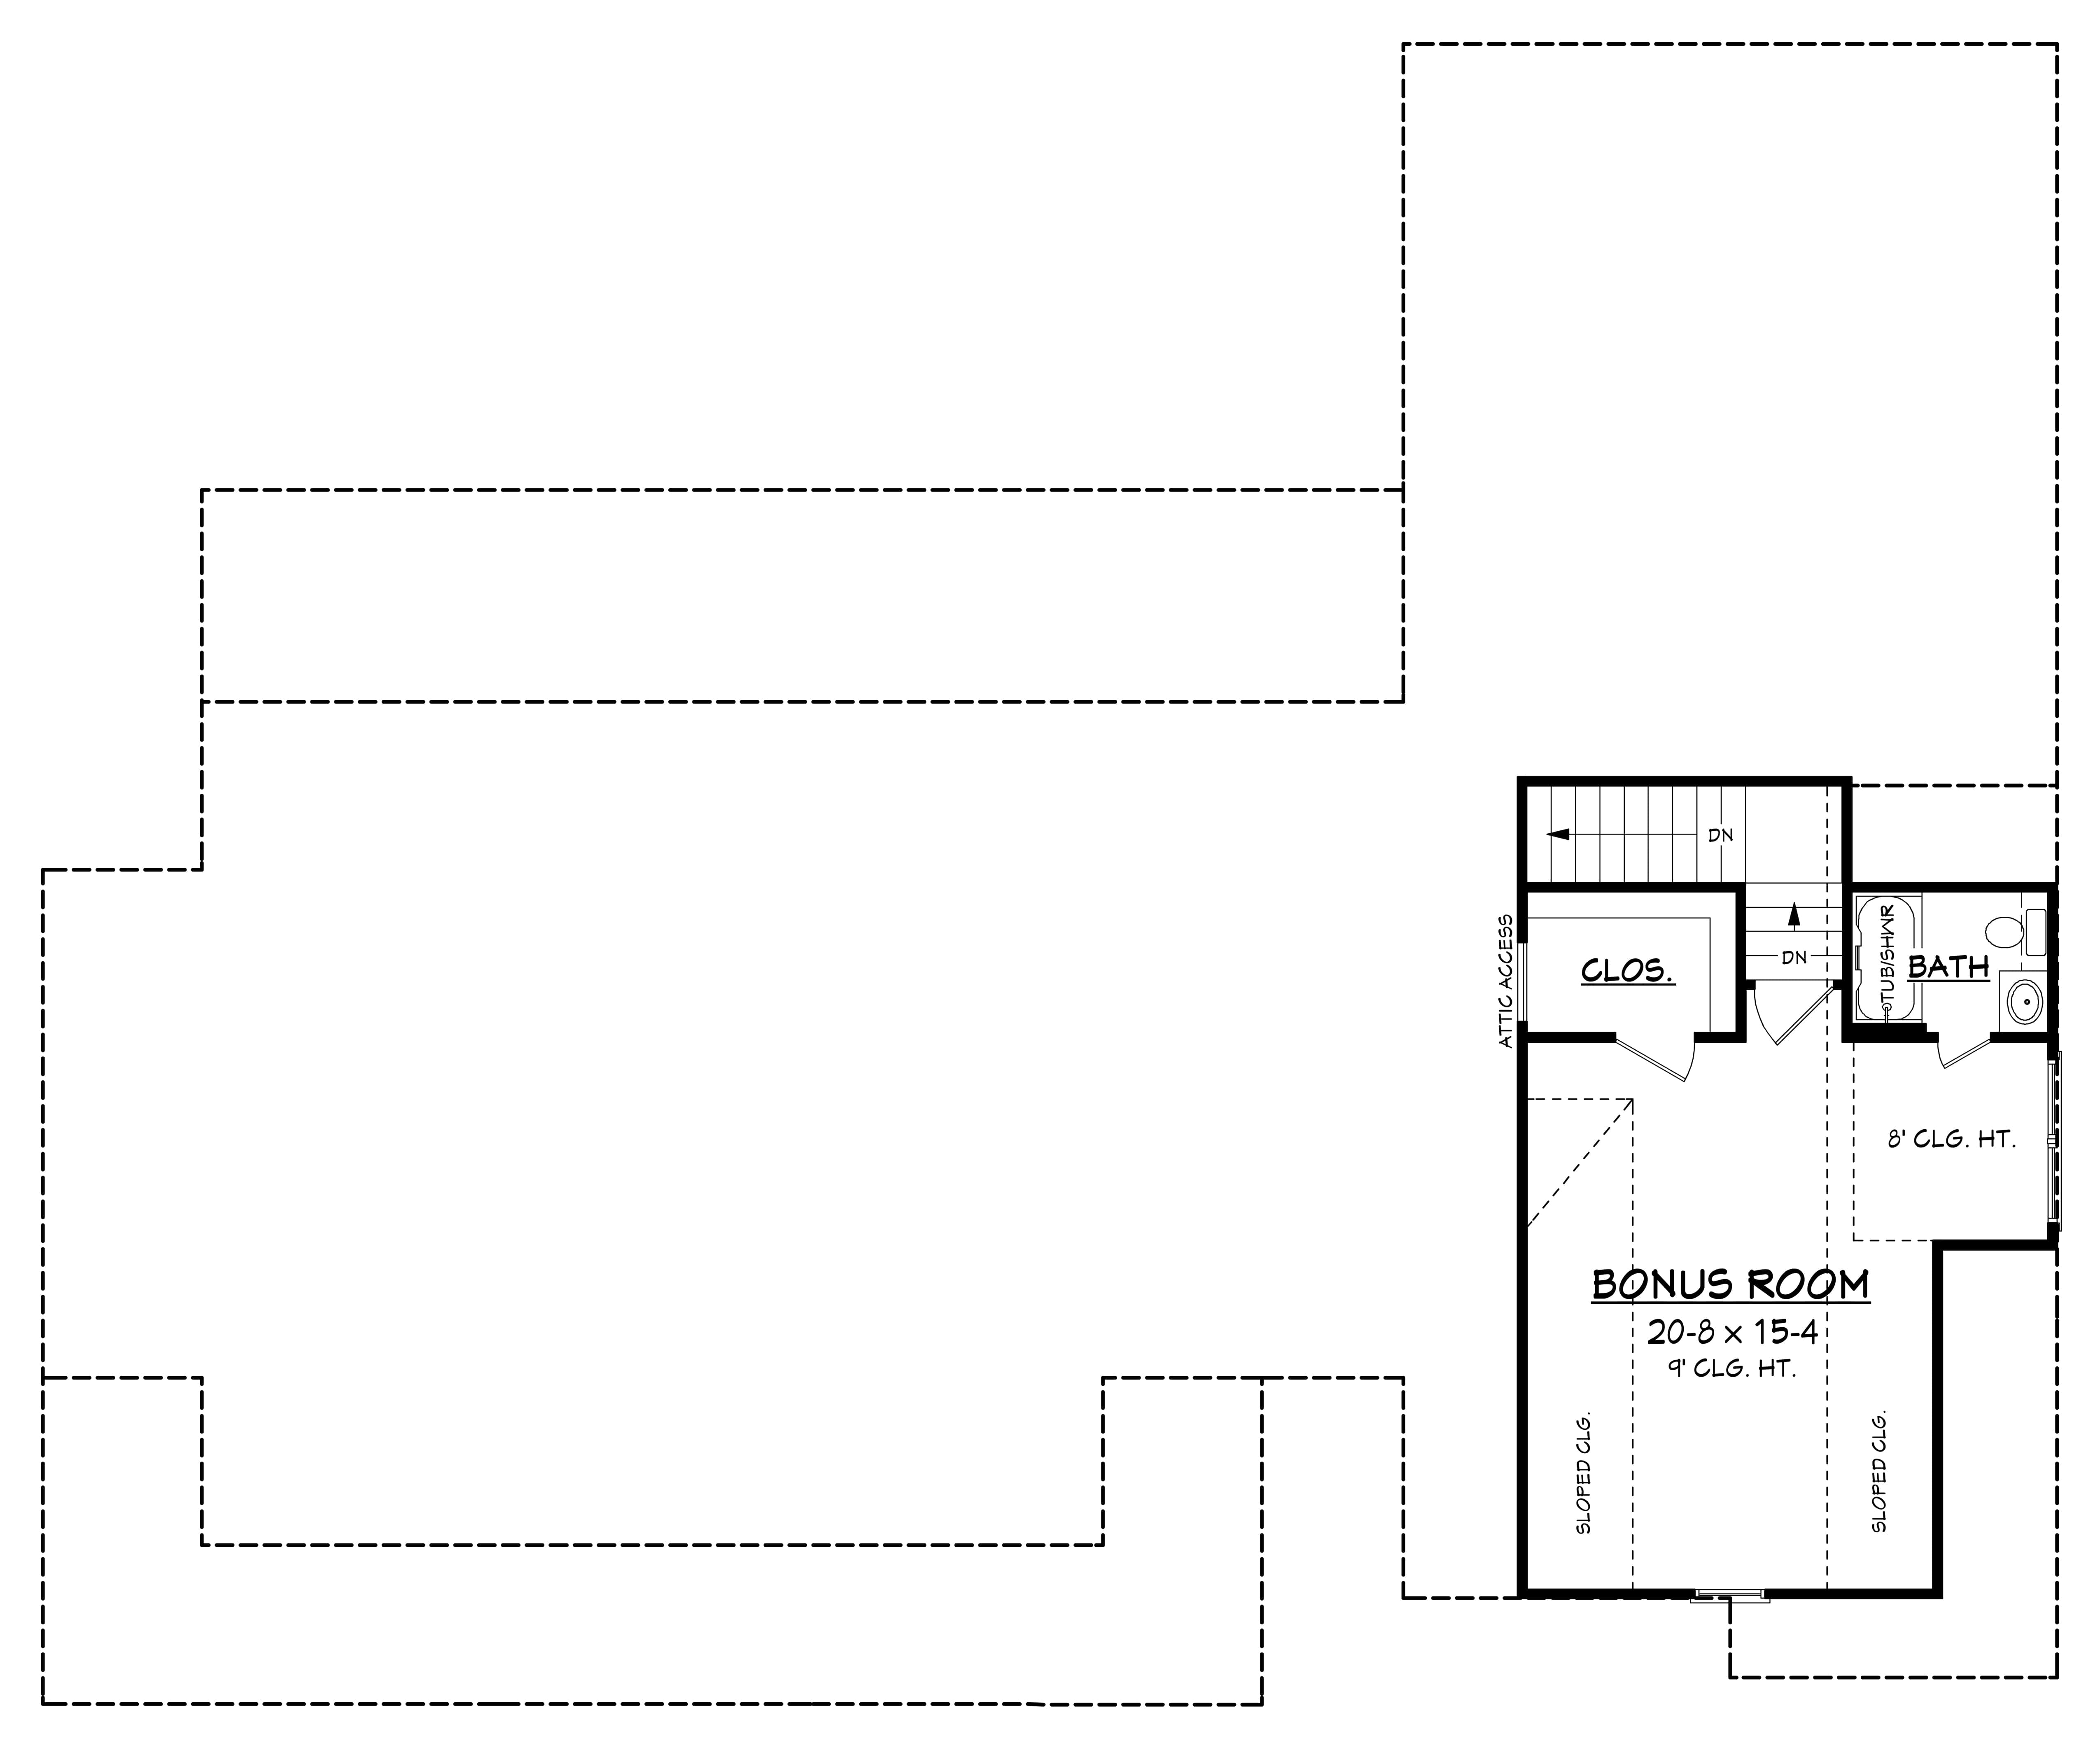 3 bedrm  2282 sq ft traditional house plan  142